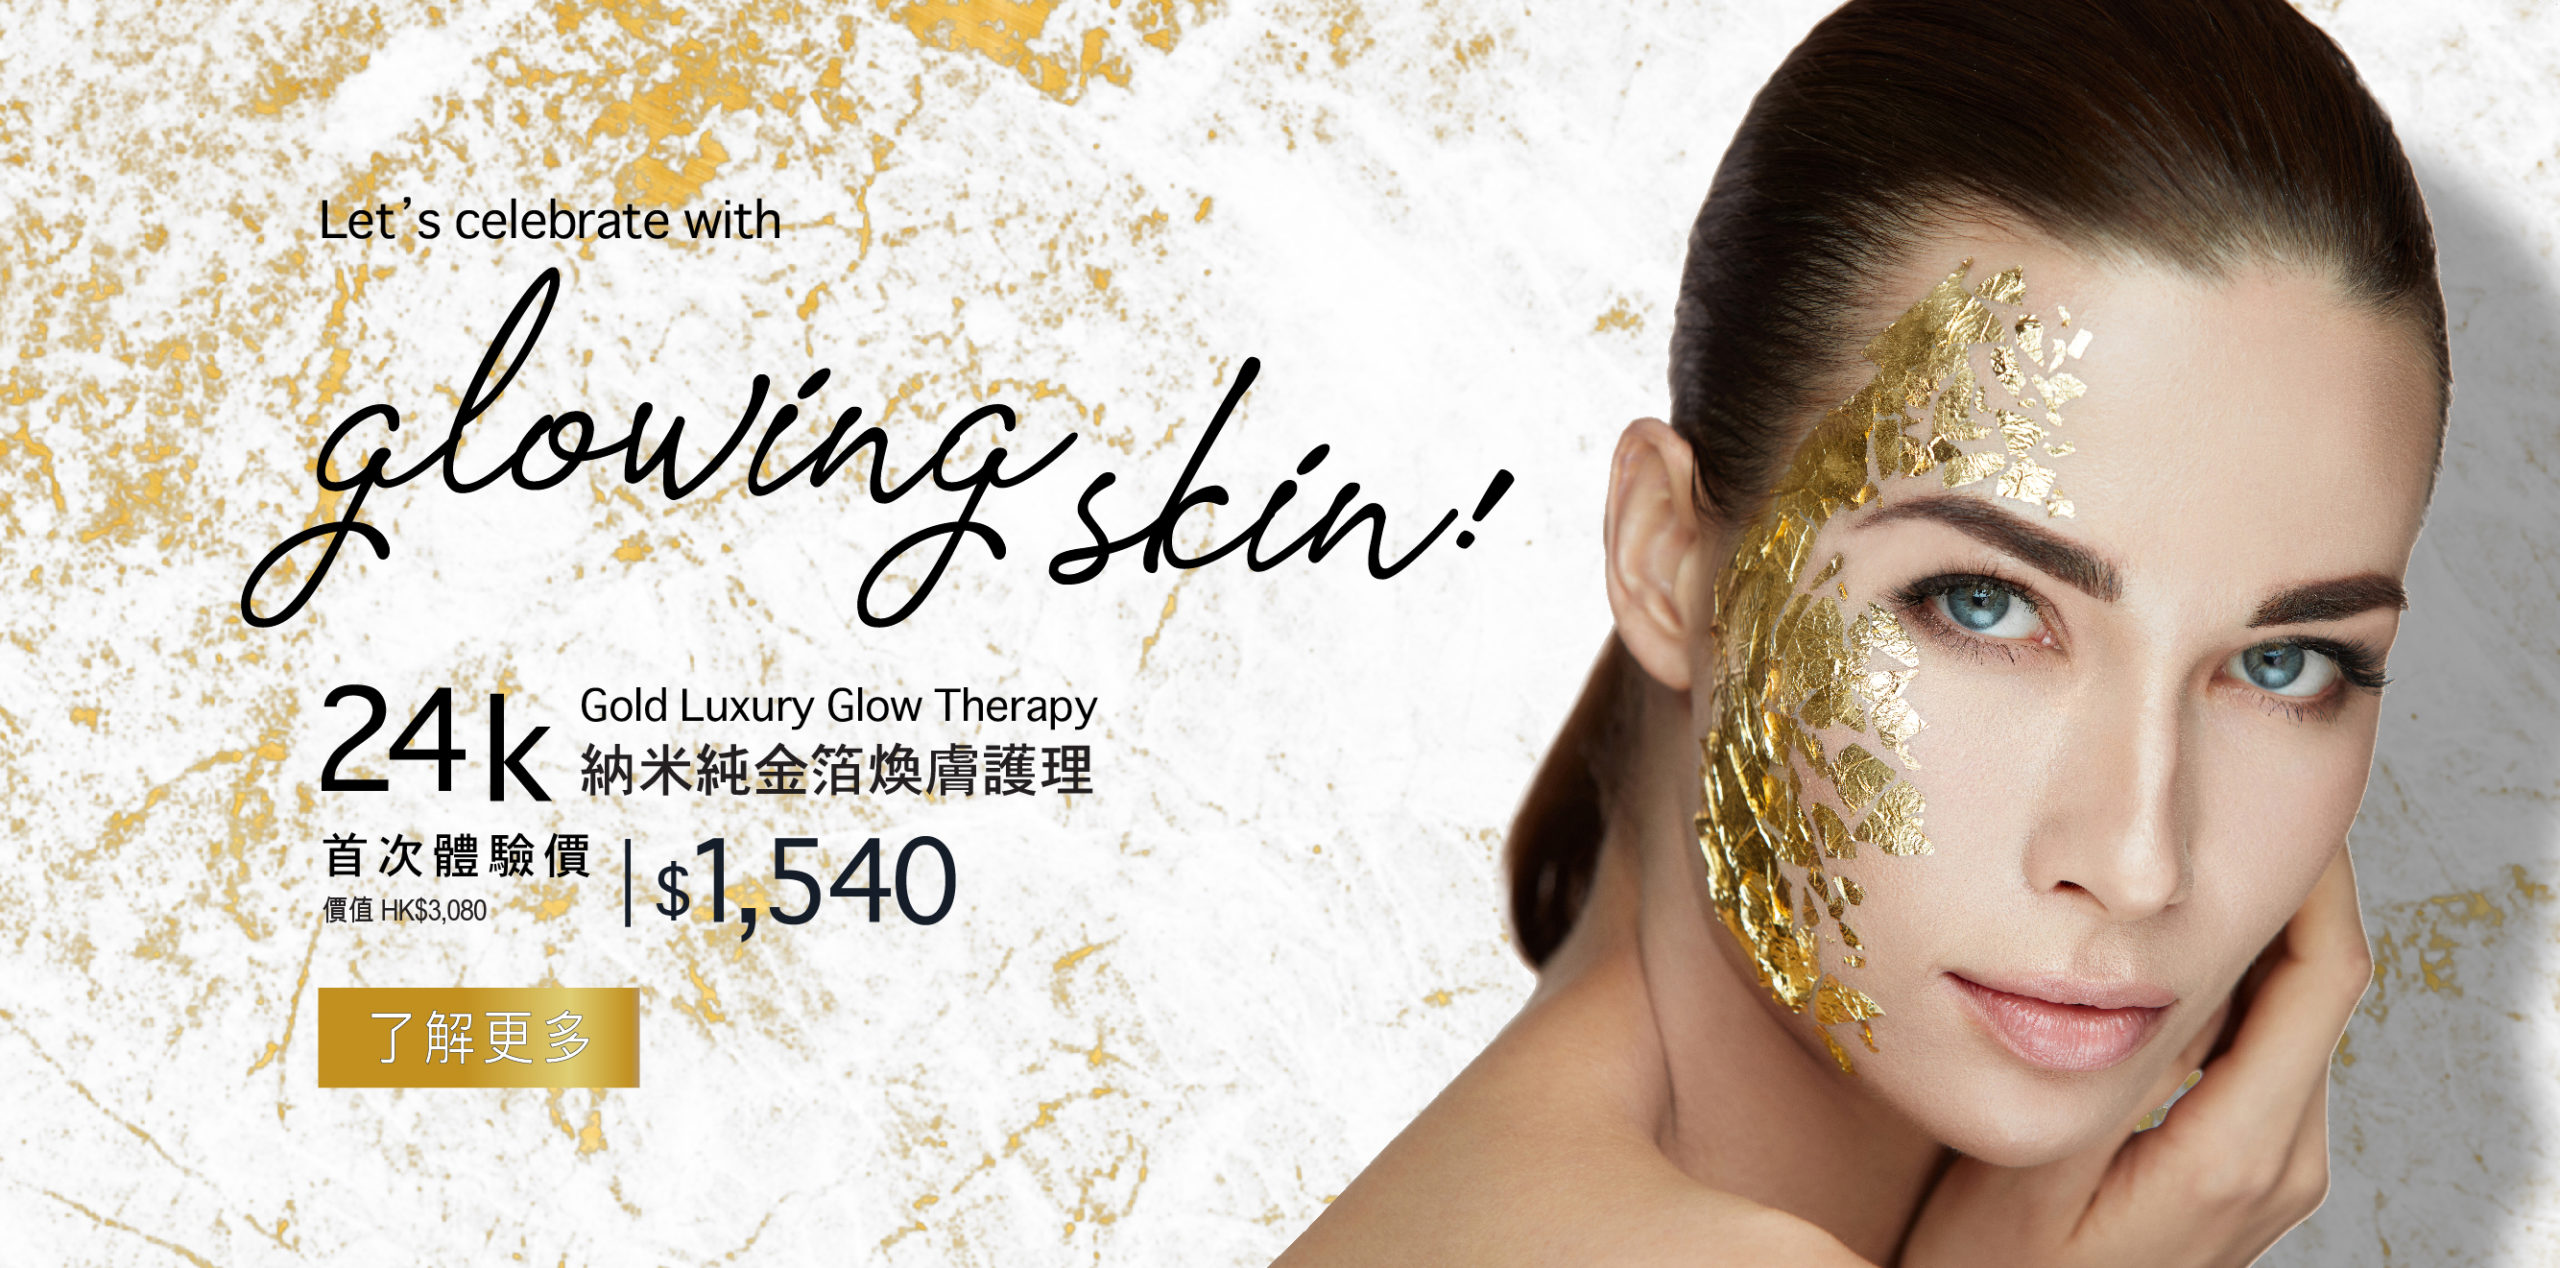 24K Gold Luxury Glow Therapy-01